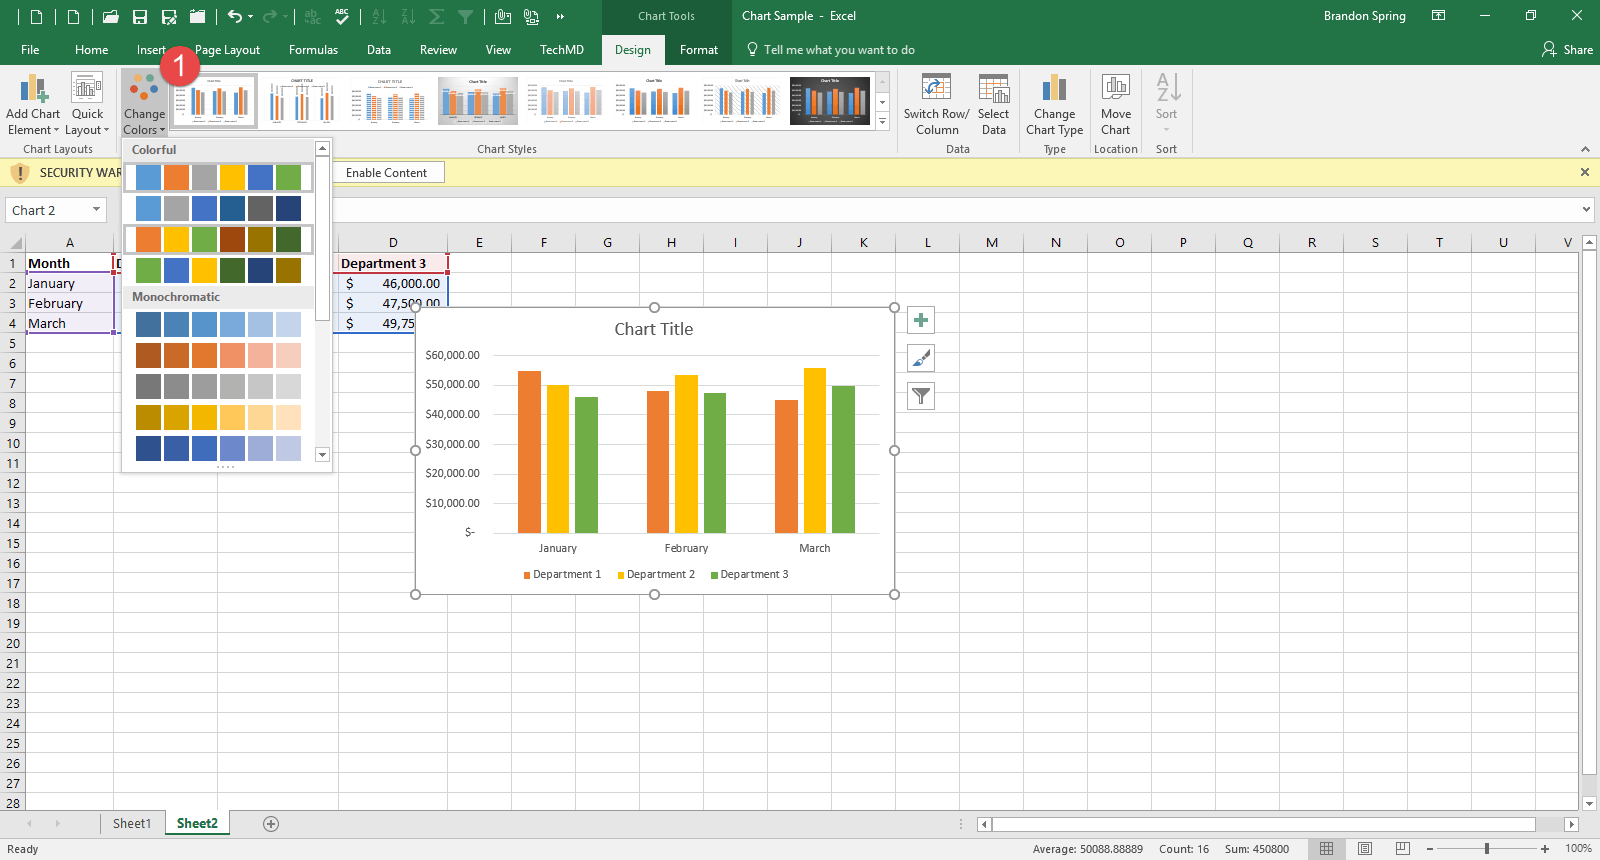 Change color of lines in excel graph - If You Click The Drop Down Menu In The Center Of The Ribbon Bar You Will Find A List Of Several Chart Styles To Choose From Should You Wish To Adapt The